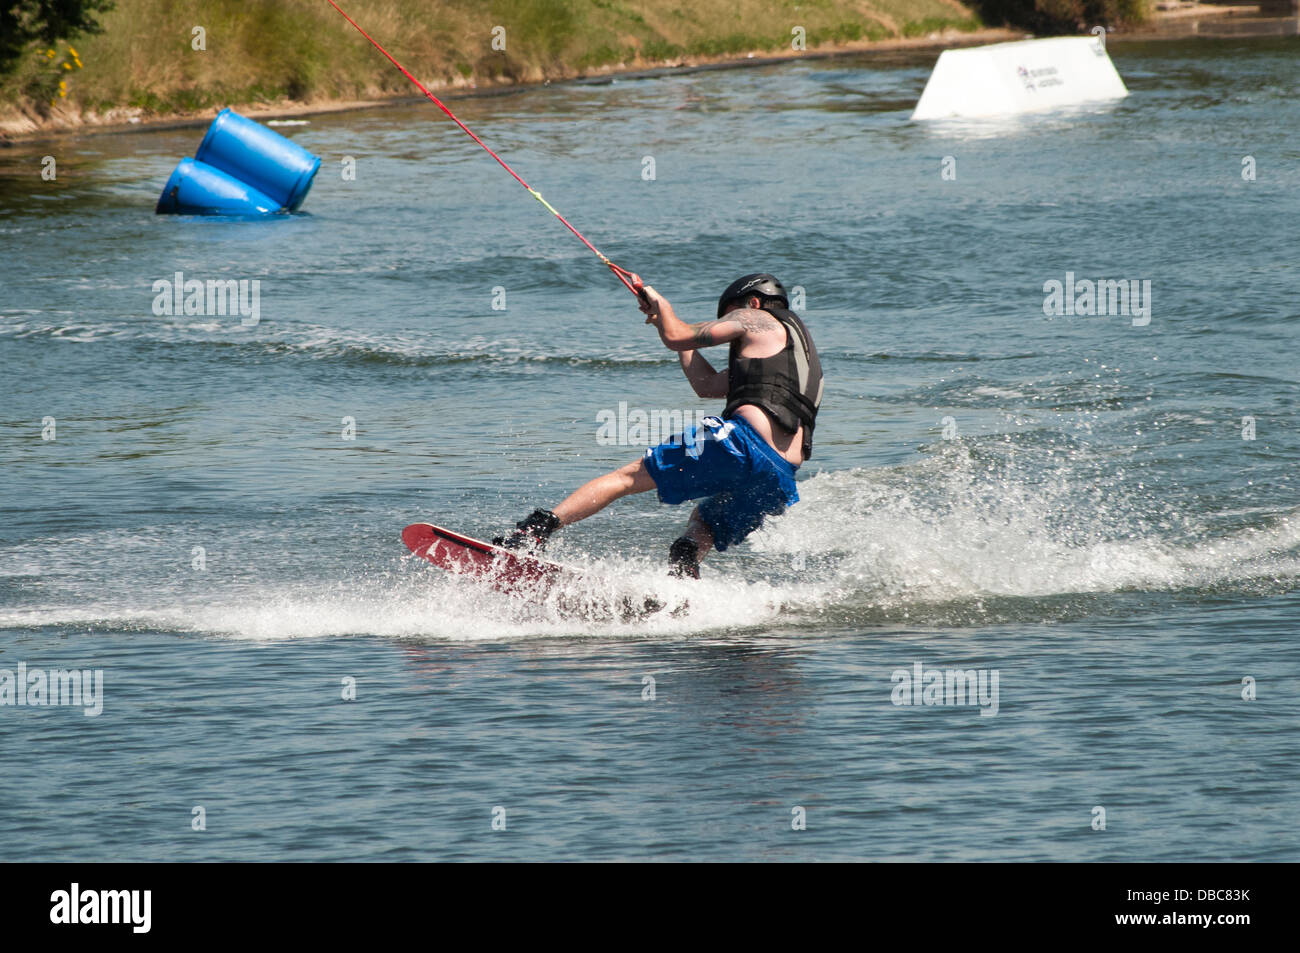 man wakeboarding on a lake - Stock Image